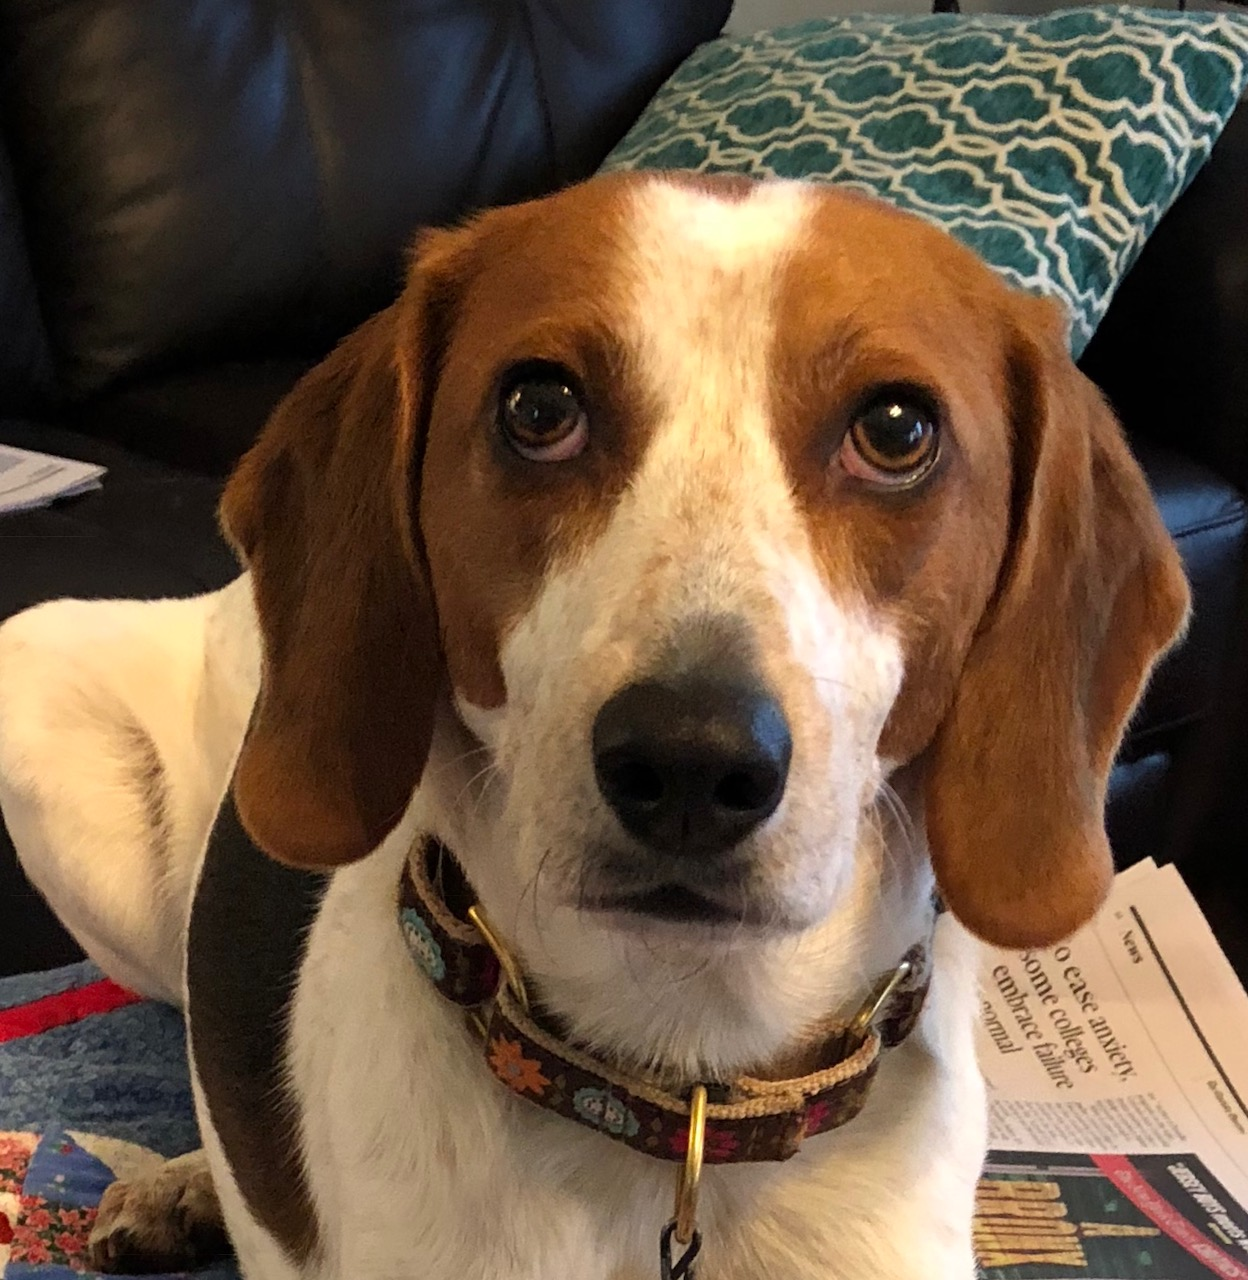 Sammy is a brown and white Beagle wearing a colorful collar that has a floral pattern. His brown eyes are raised up as he looks up toward the person taking the photo.